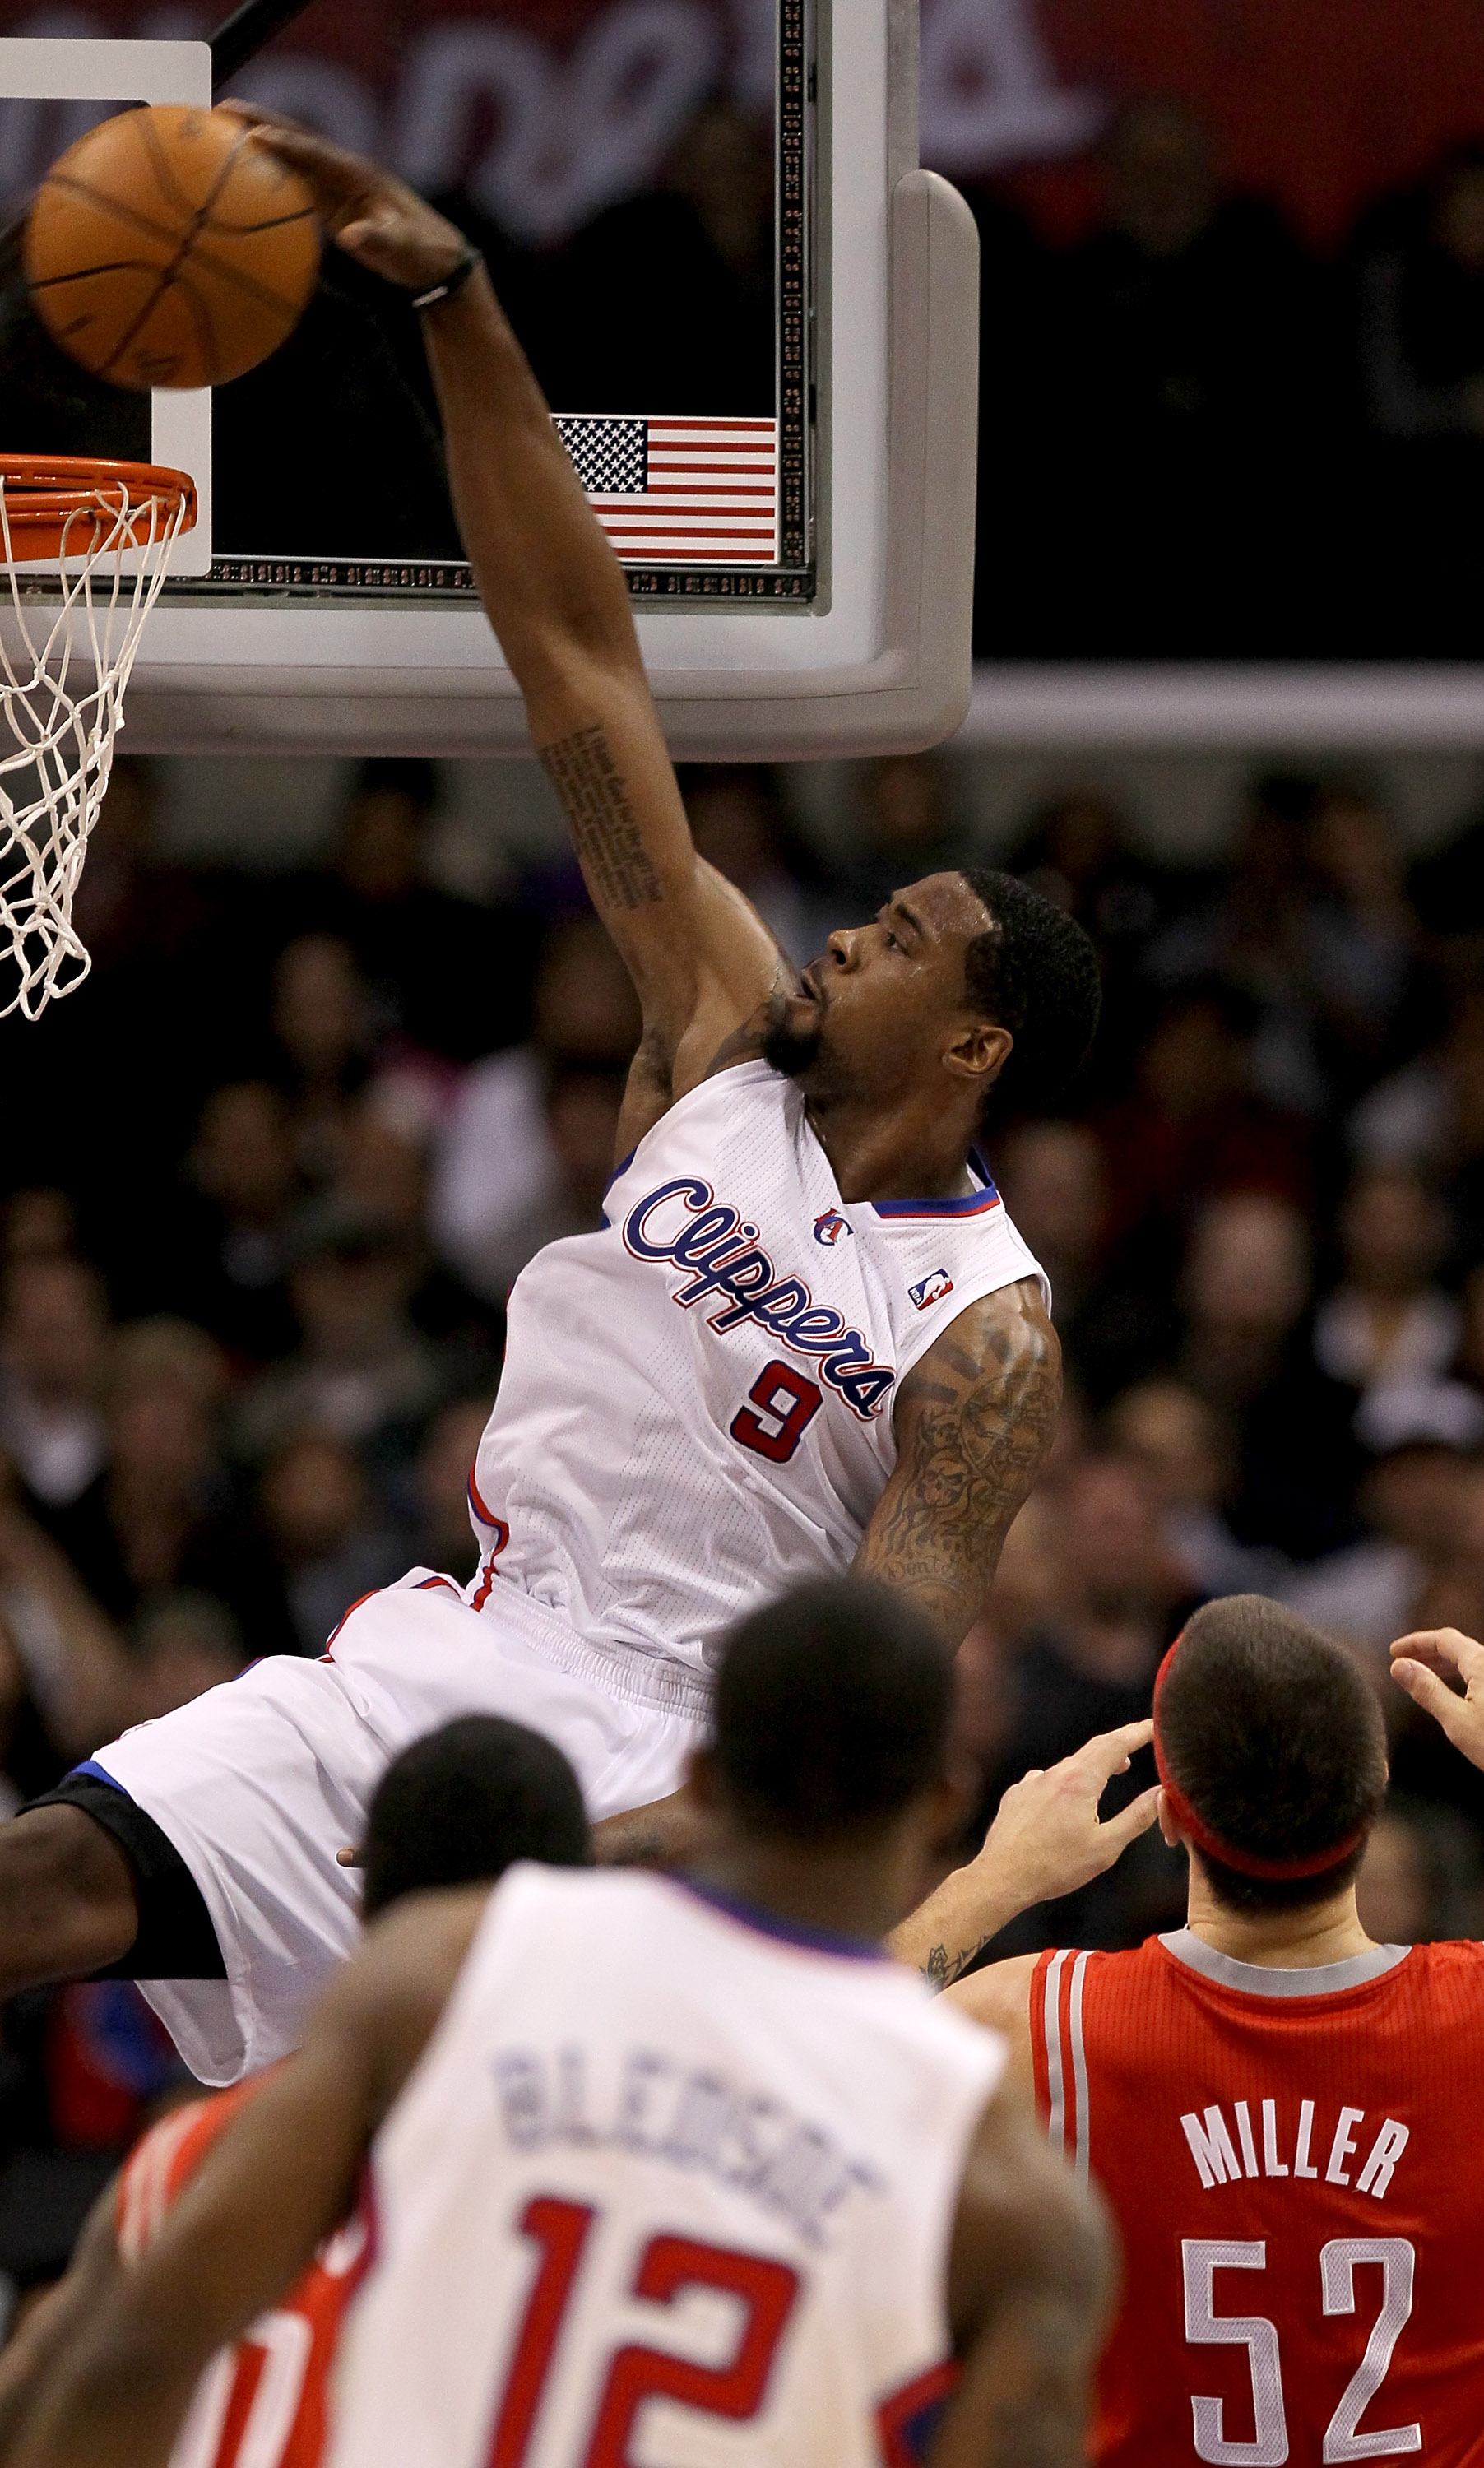 LOS ANGELES, CA - DECEMBER 22:   DeAndre Jordan #9 of the Los Angeles Clippers dunks against the Houston Rockets at Staples Center on December 22, 2010 in Los Angeles, California.  The Rockets won 97-92. NOTE TO USER: User expressly acknowledges and agree